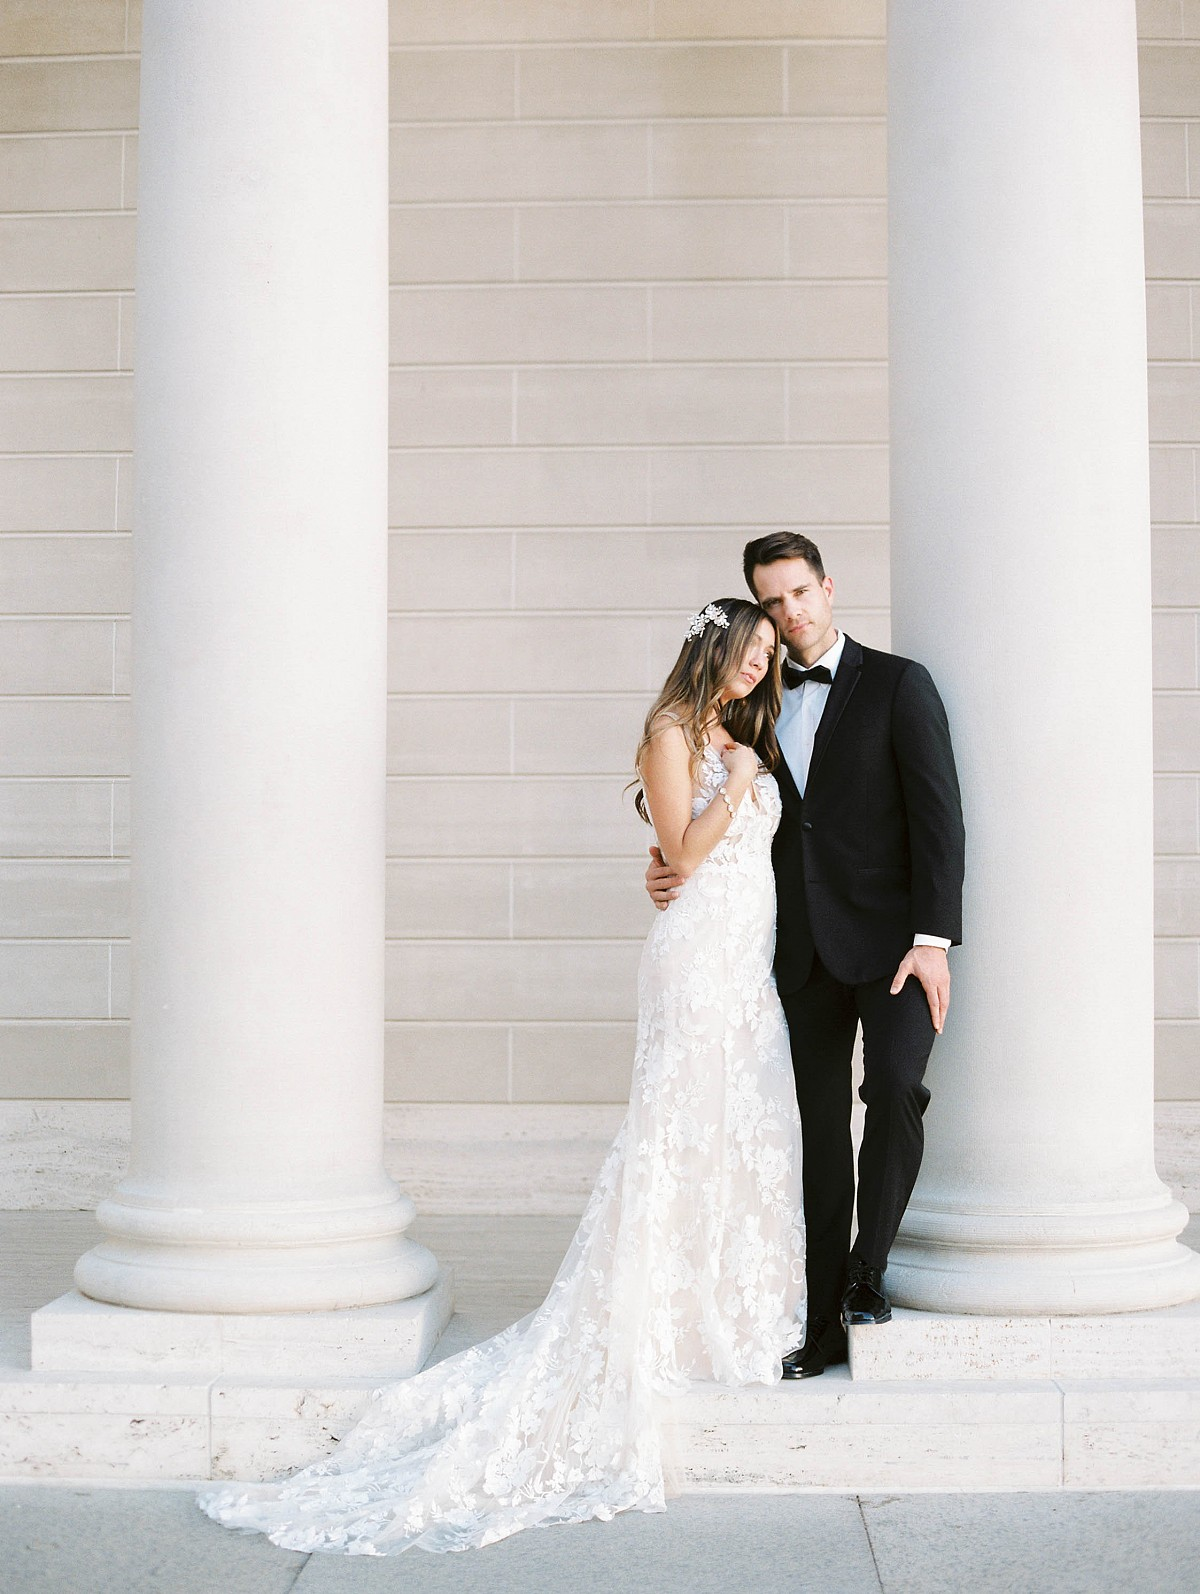 Chic Bridal Style Inspired by French Neoclassical Architecture